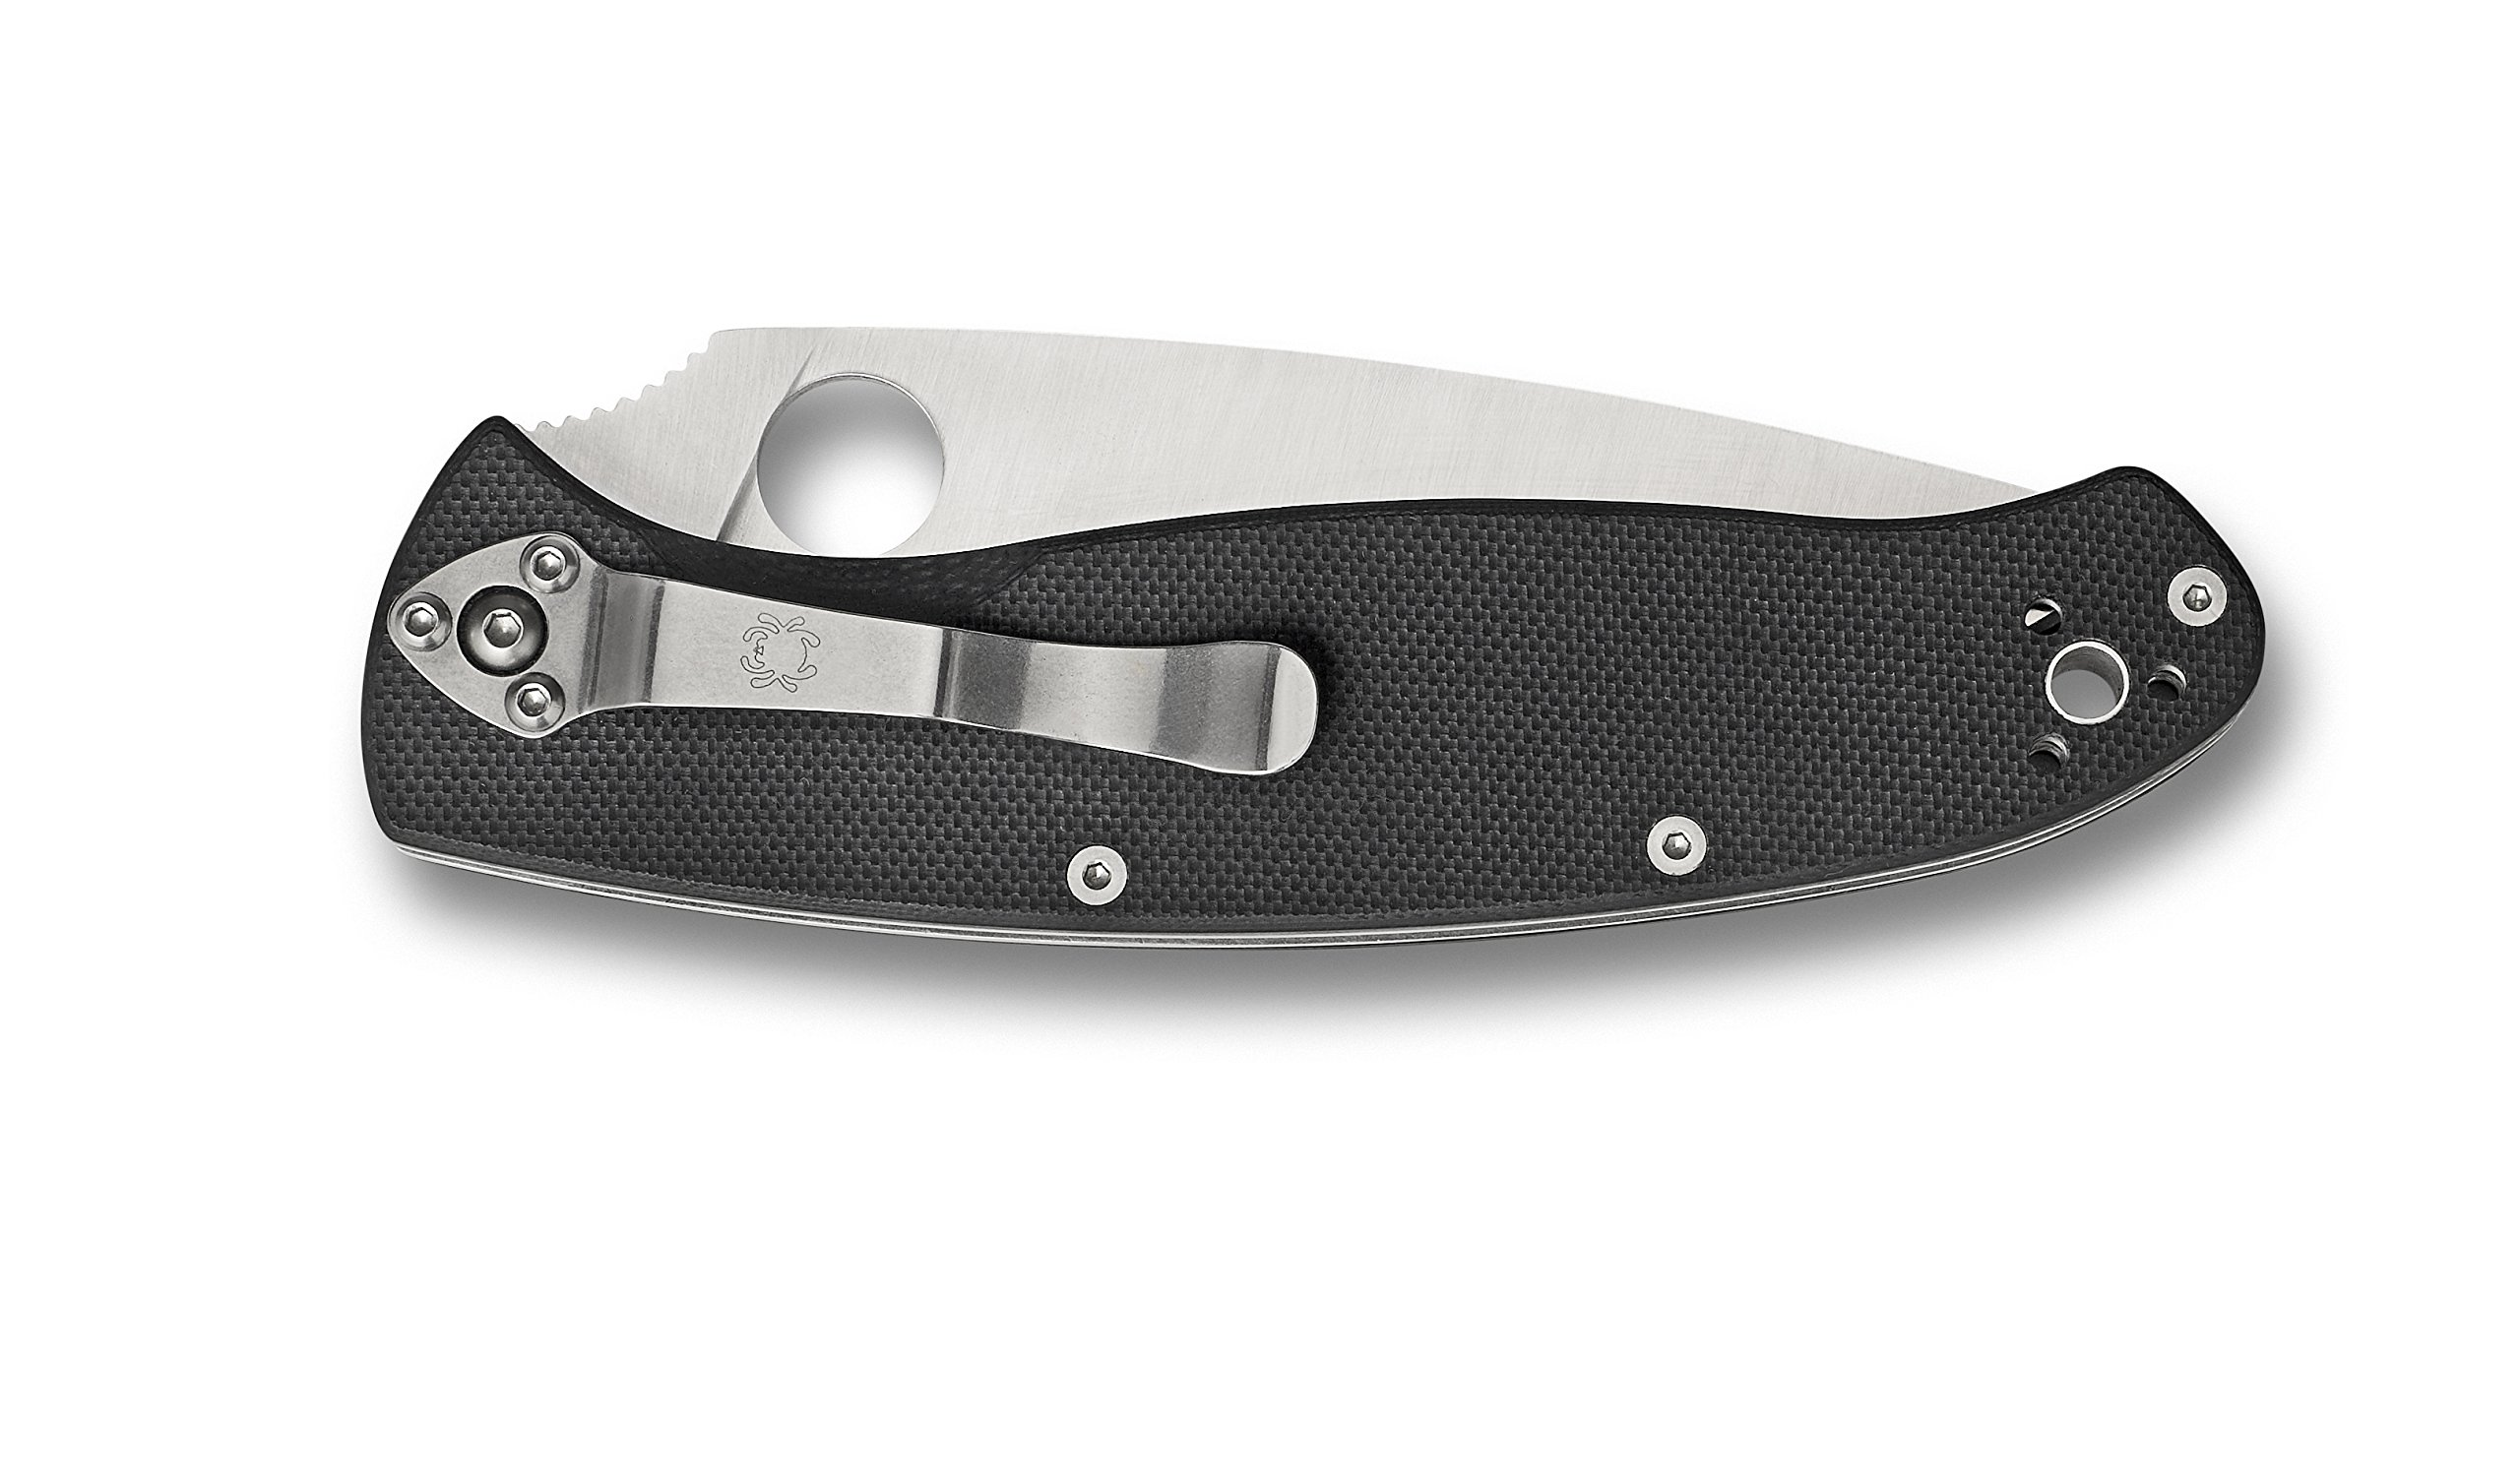 Spyderco Resilience Black G-10 PlainEdge Knife